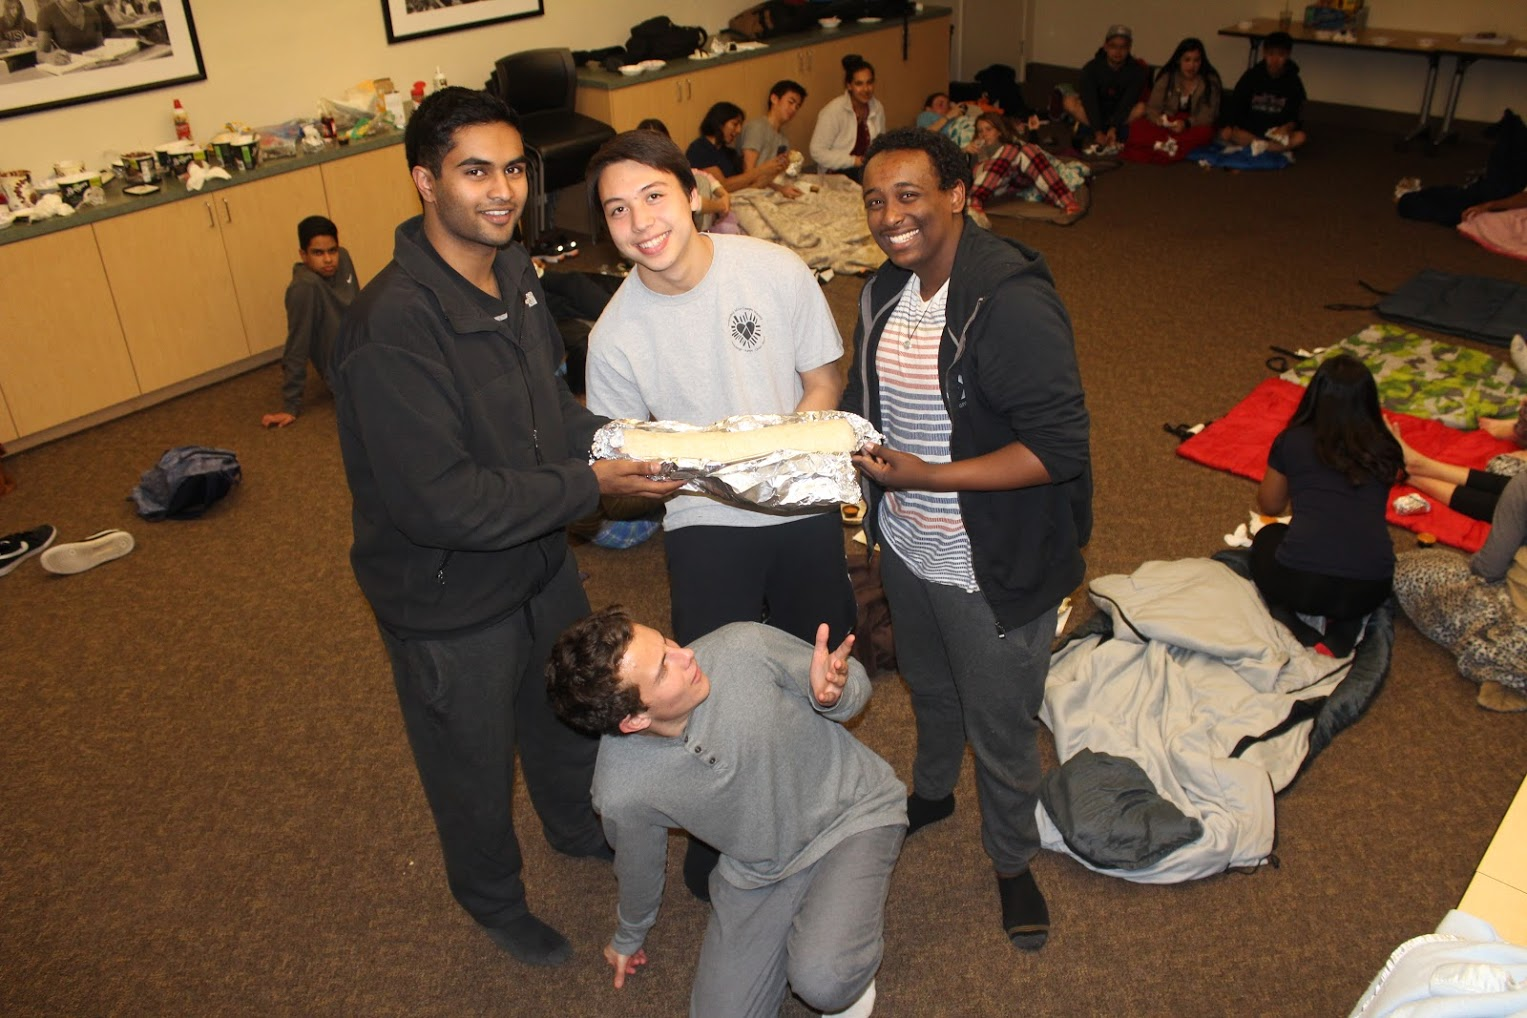 The boys in room Dabbin' Debaters decided to spilt a massive Burritozilla.